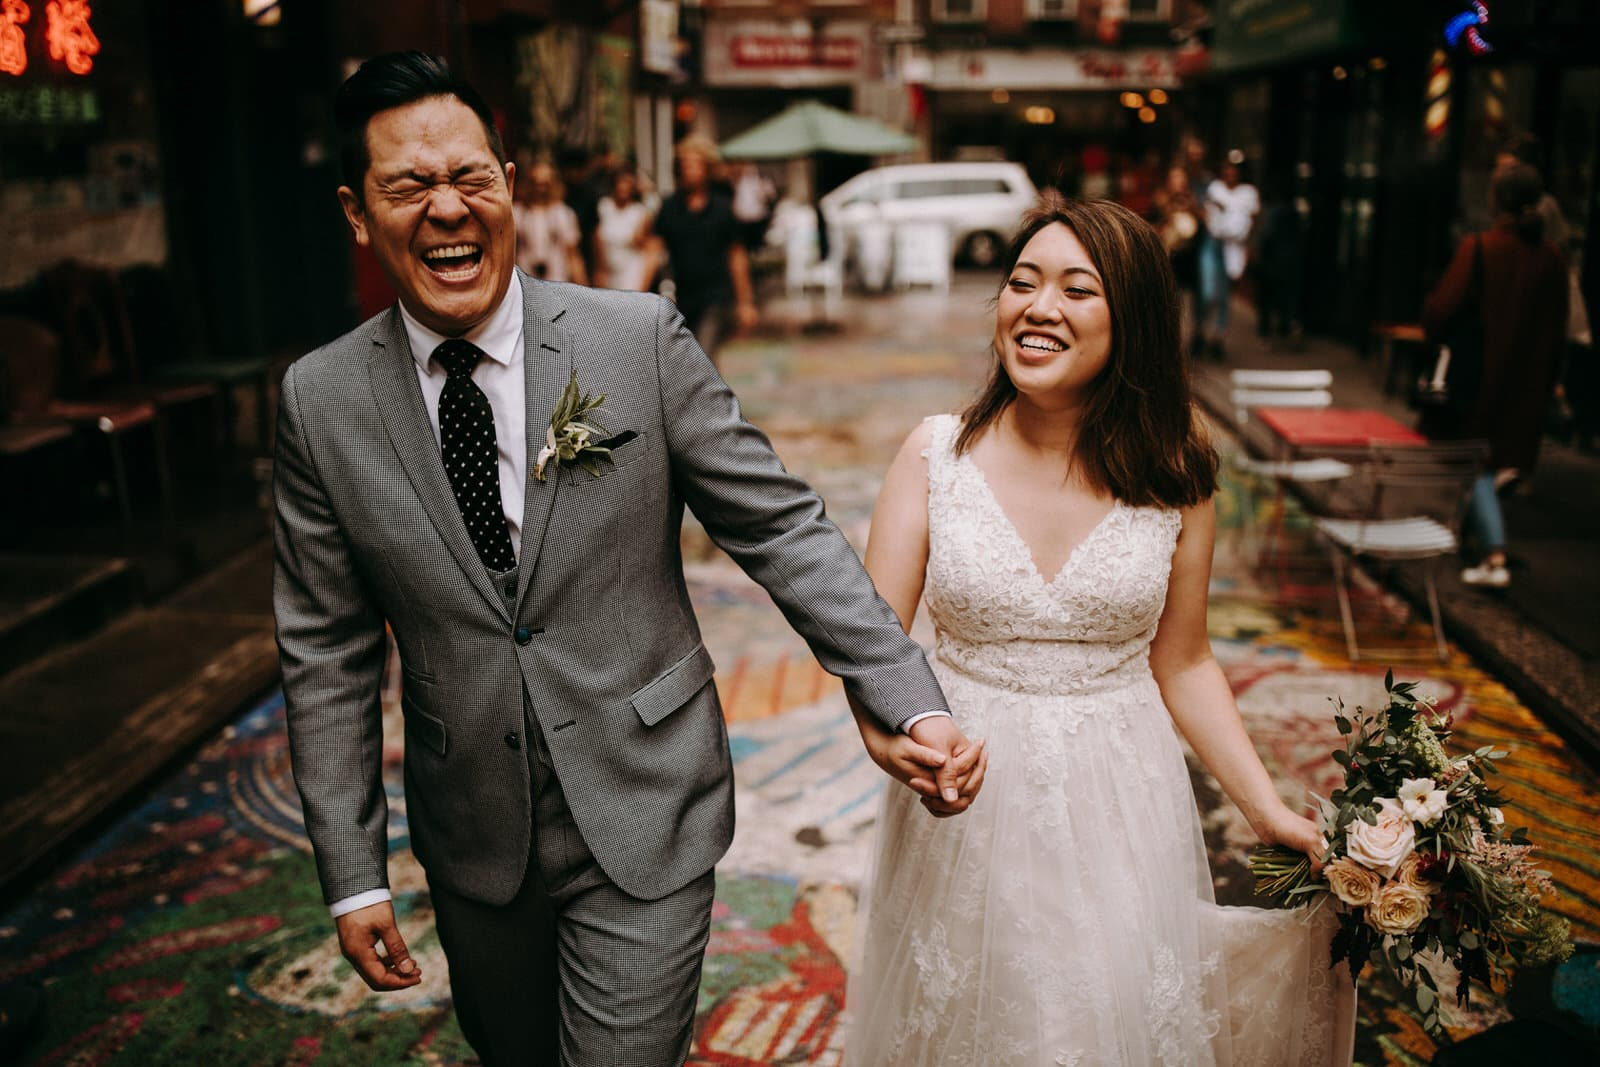 The wedding couple is laughing and walking through the streets of NYC.